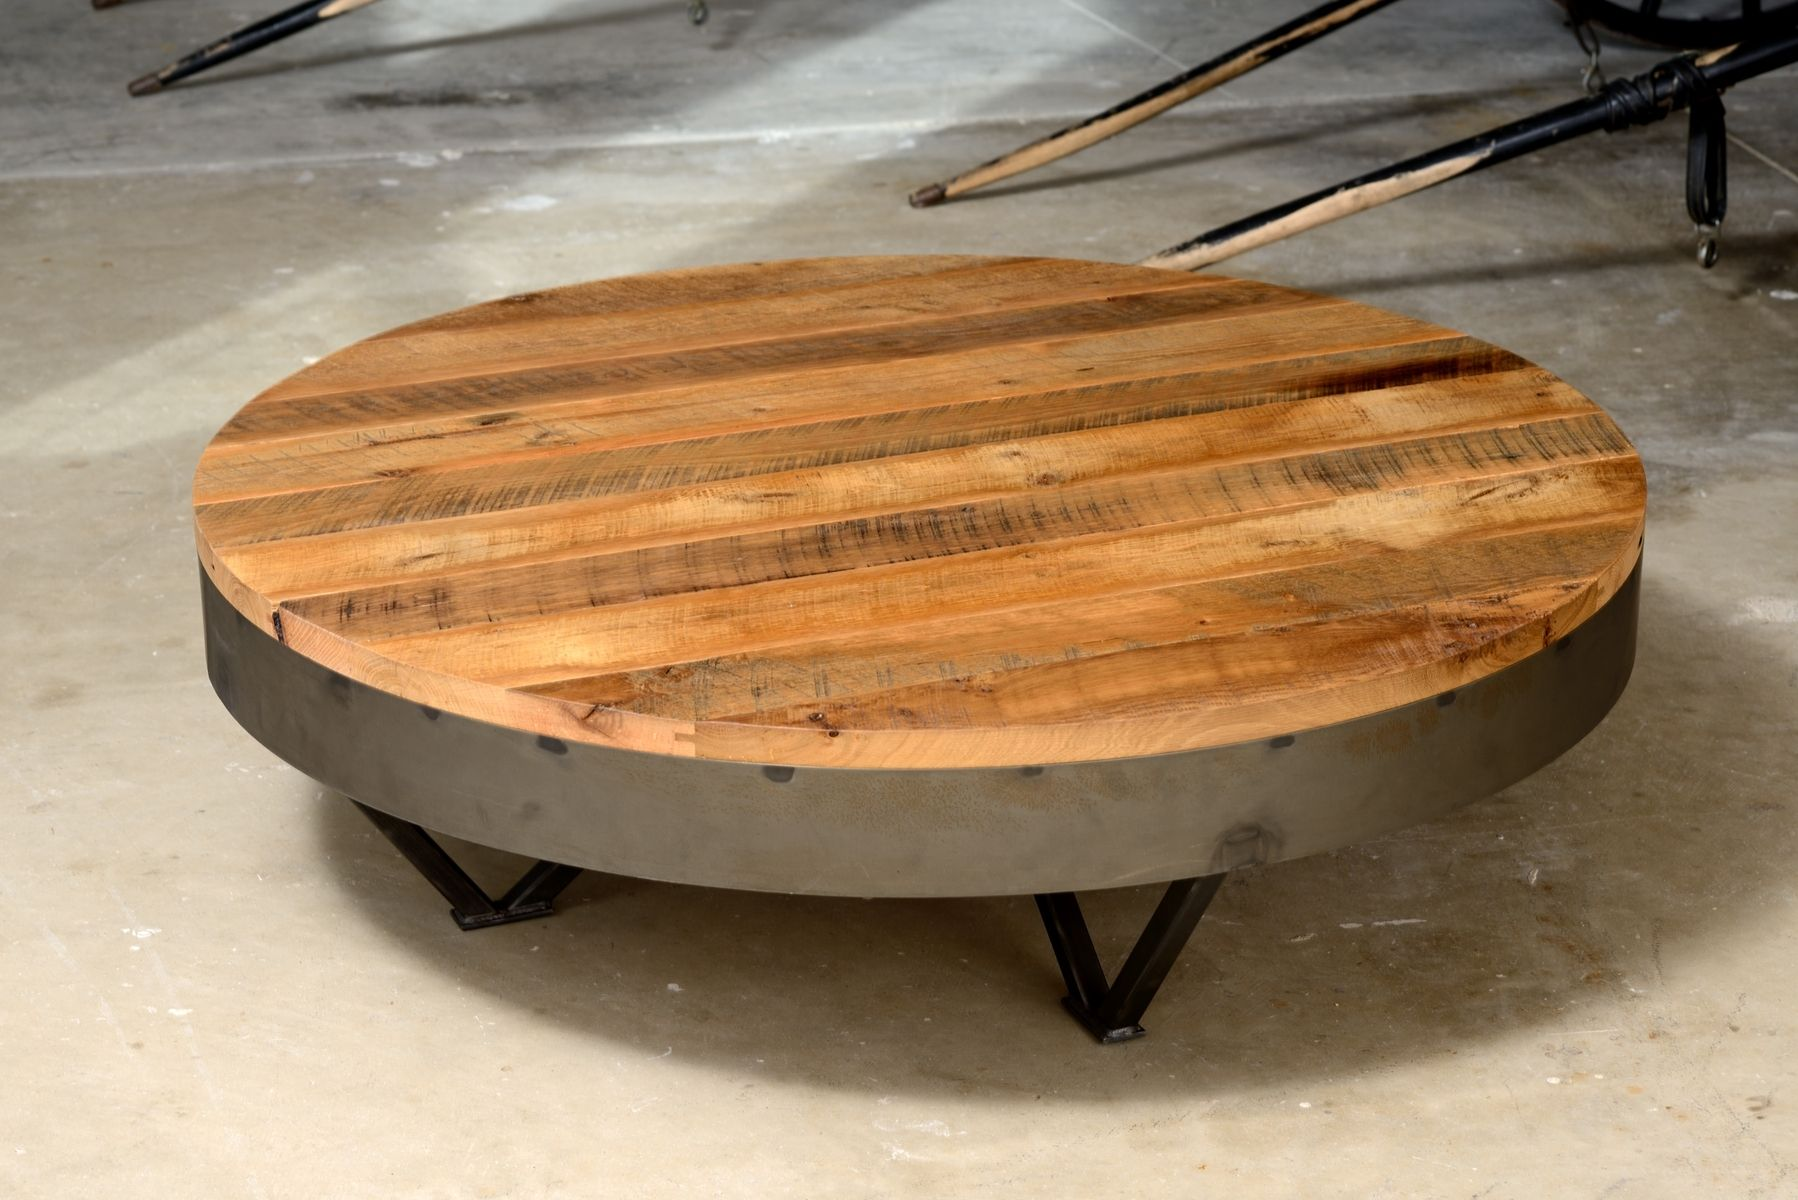 Reclaimed barn wood coffee table 36 round 48 round for Round wood and metal coffee table